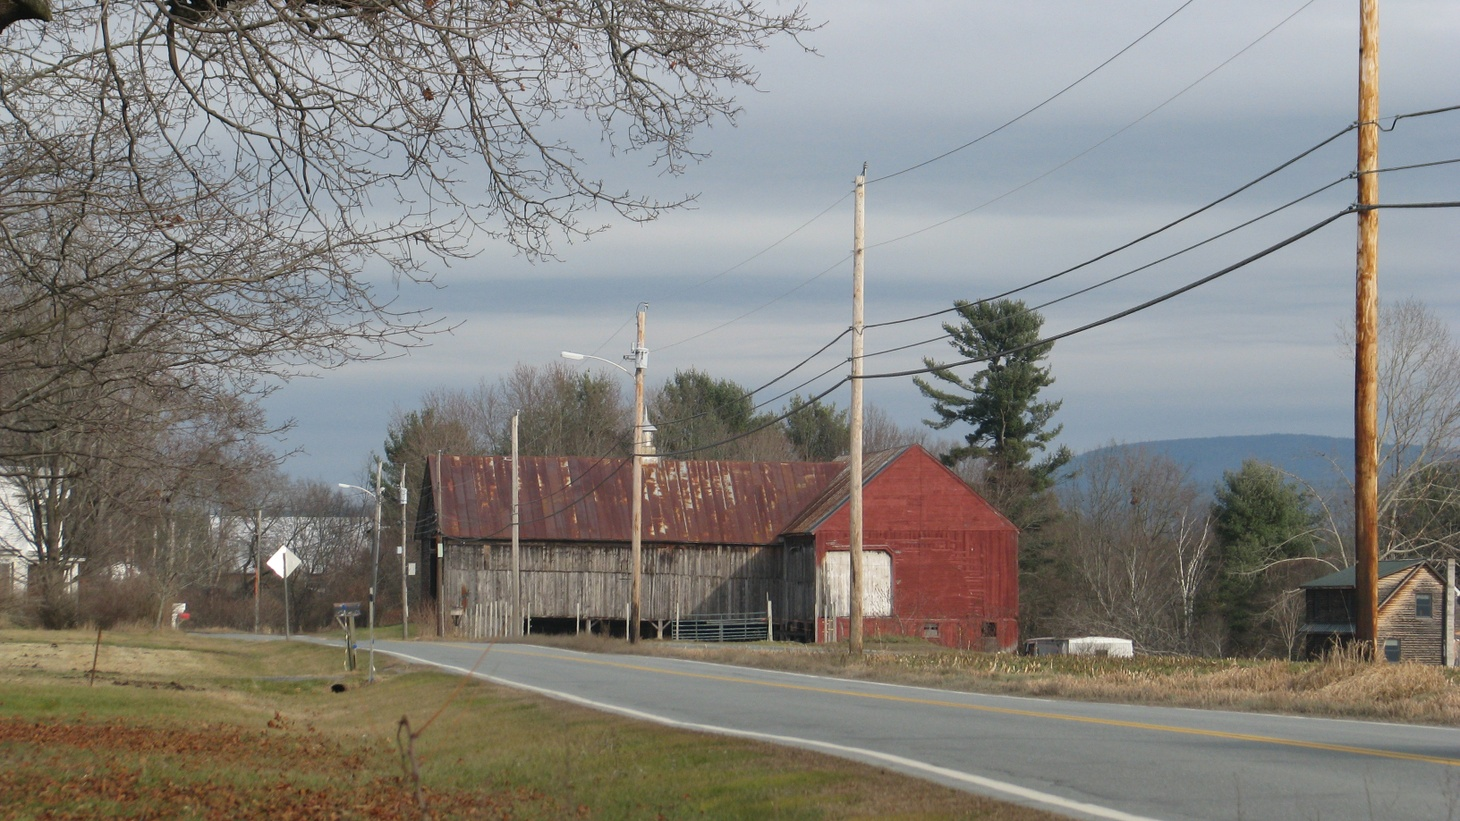 A farmer in a small New England village gets up early to milk his cows, and he's never seen alive again.